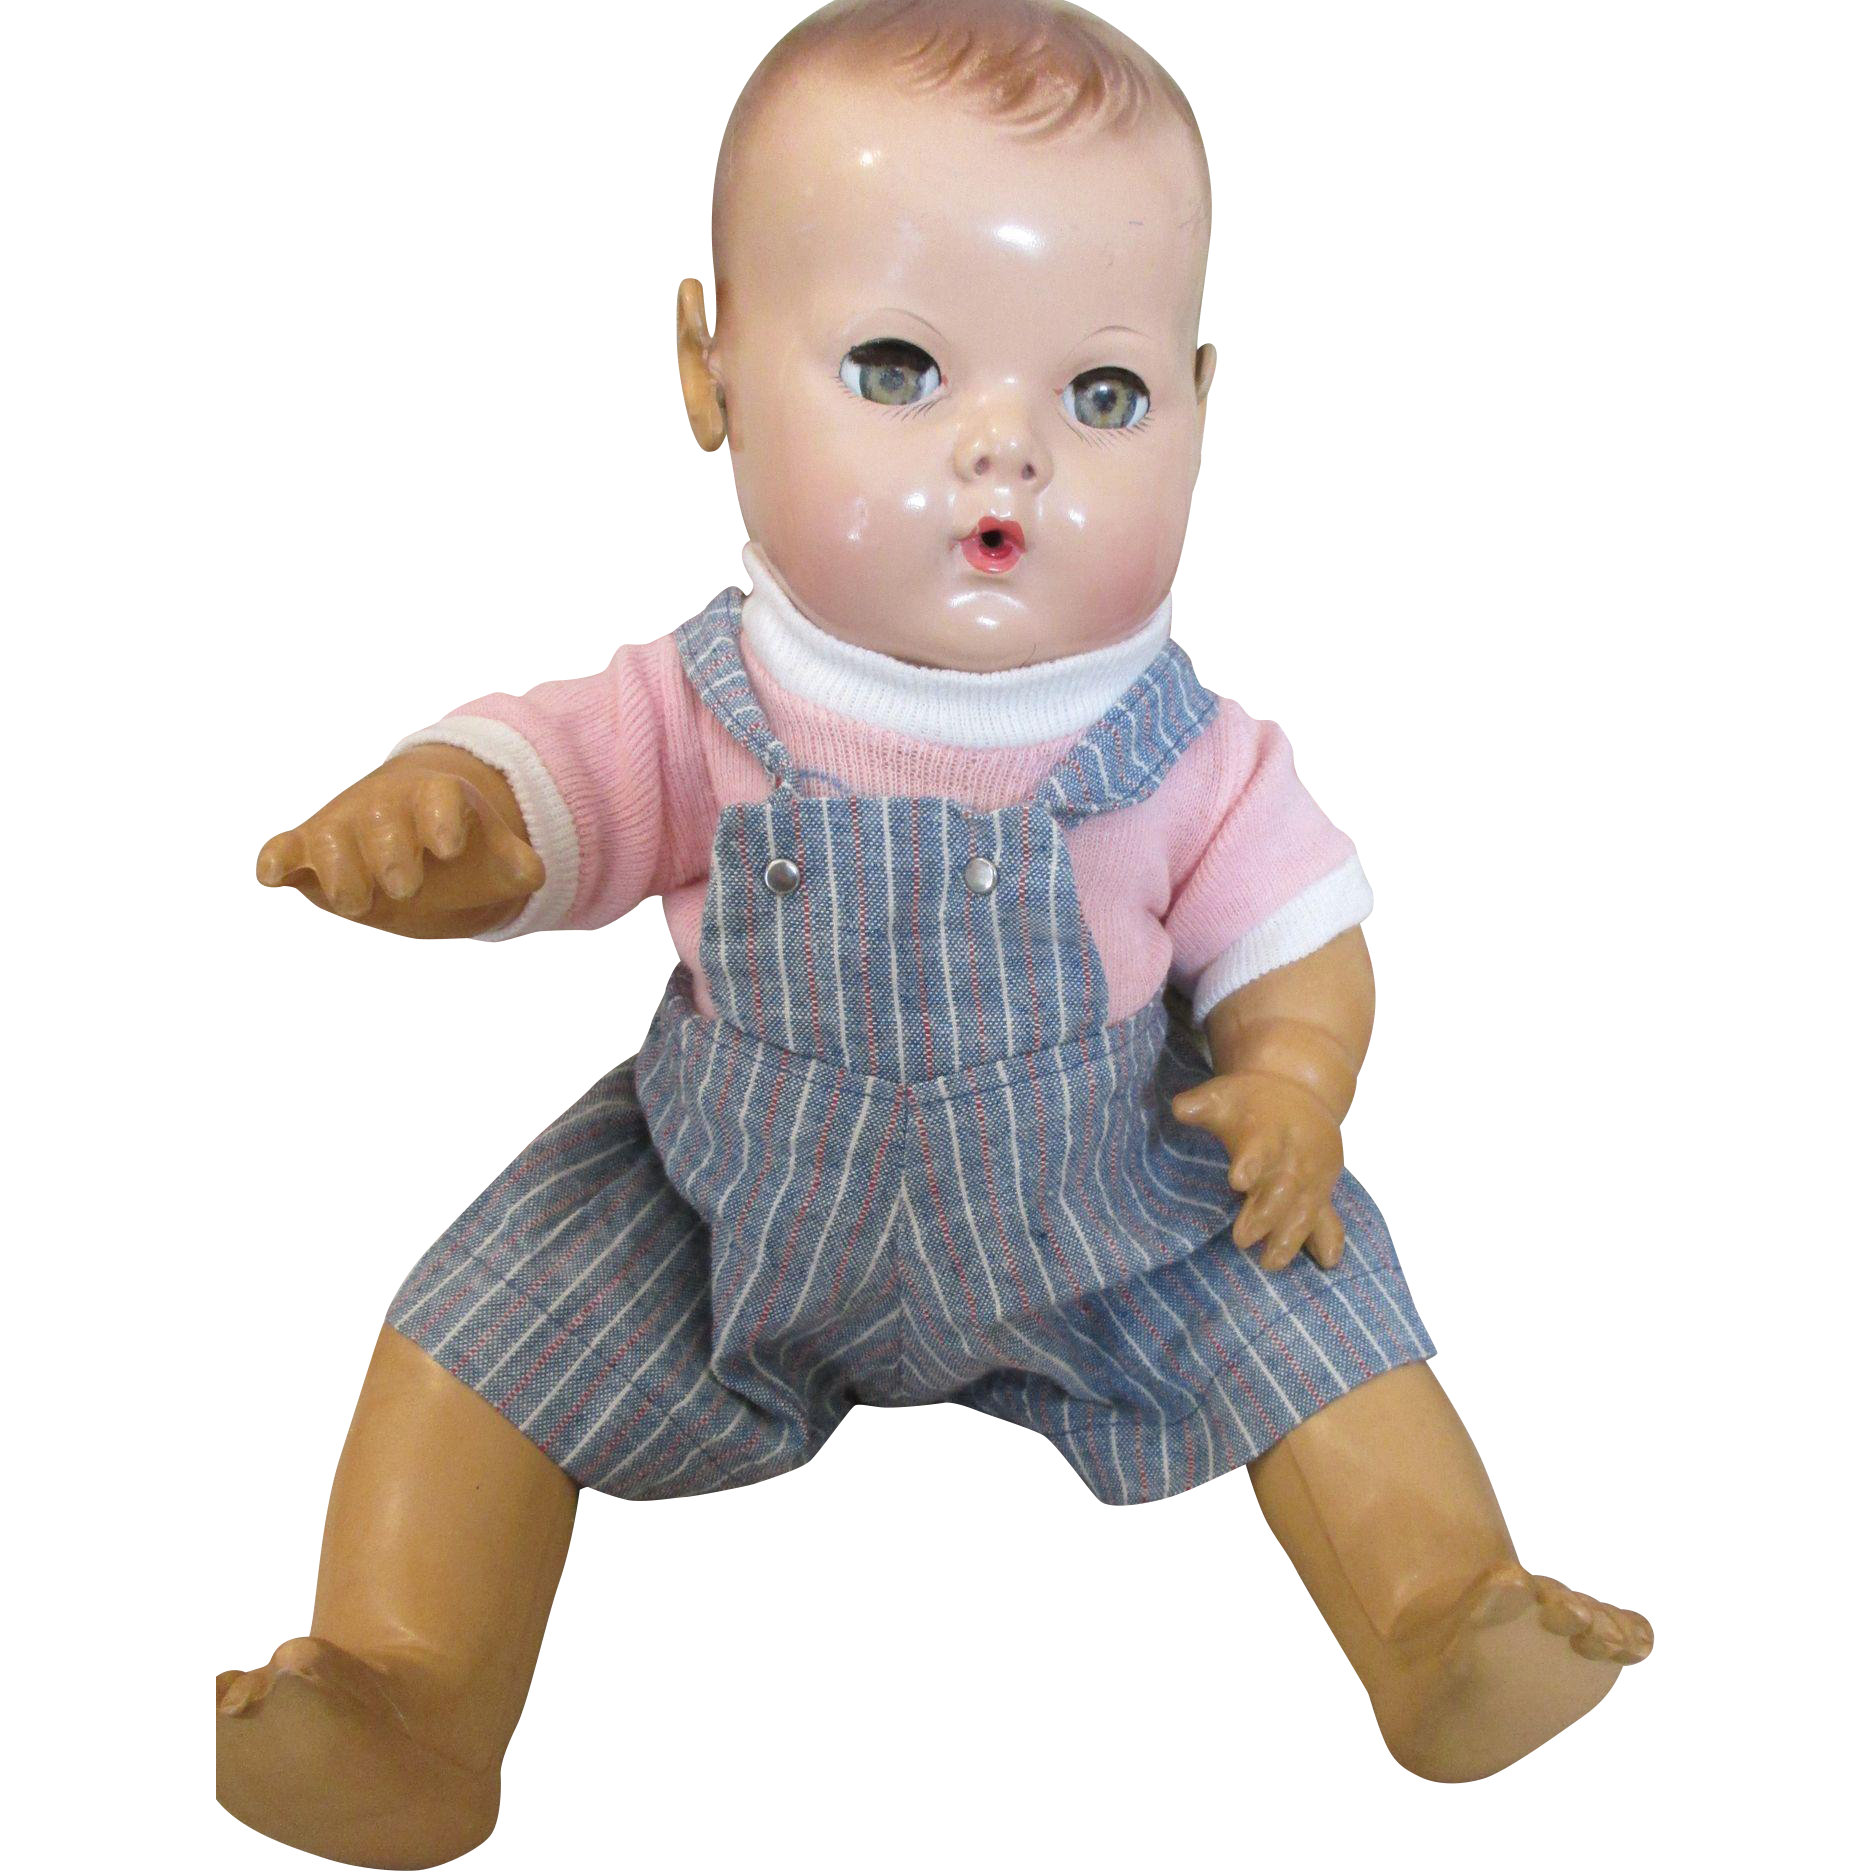 Vintage Bib Overalls and Blouse for Your Vintage Baby Doll